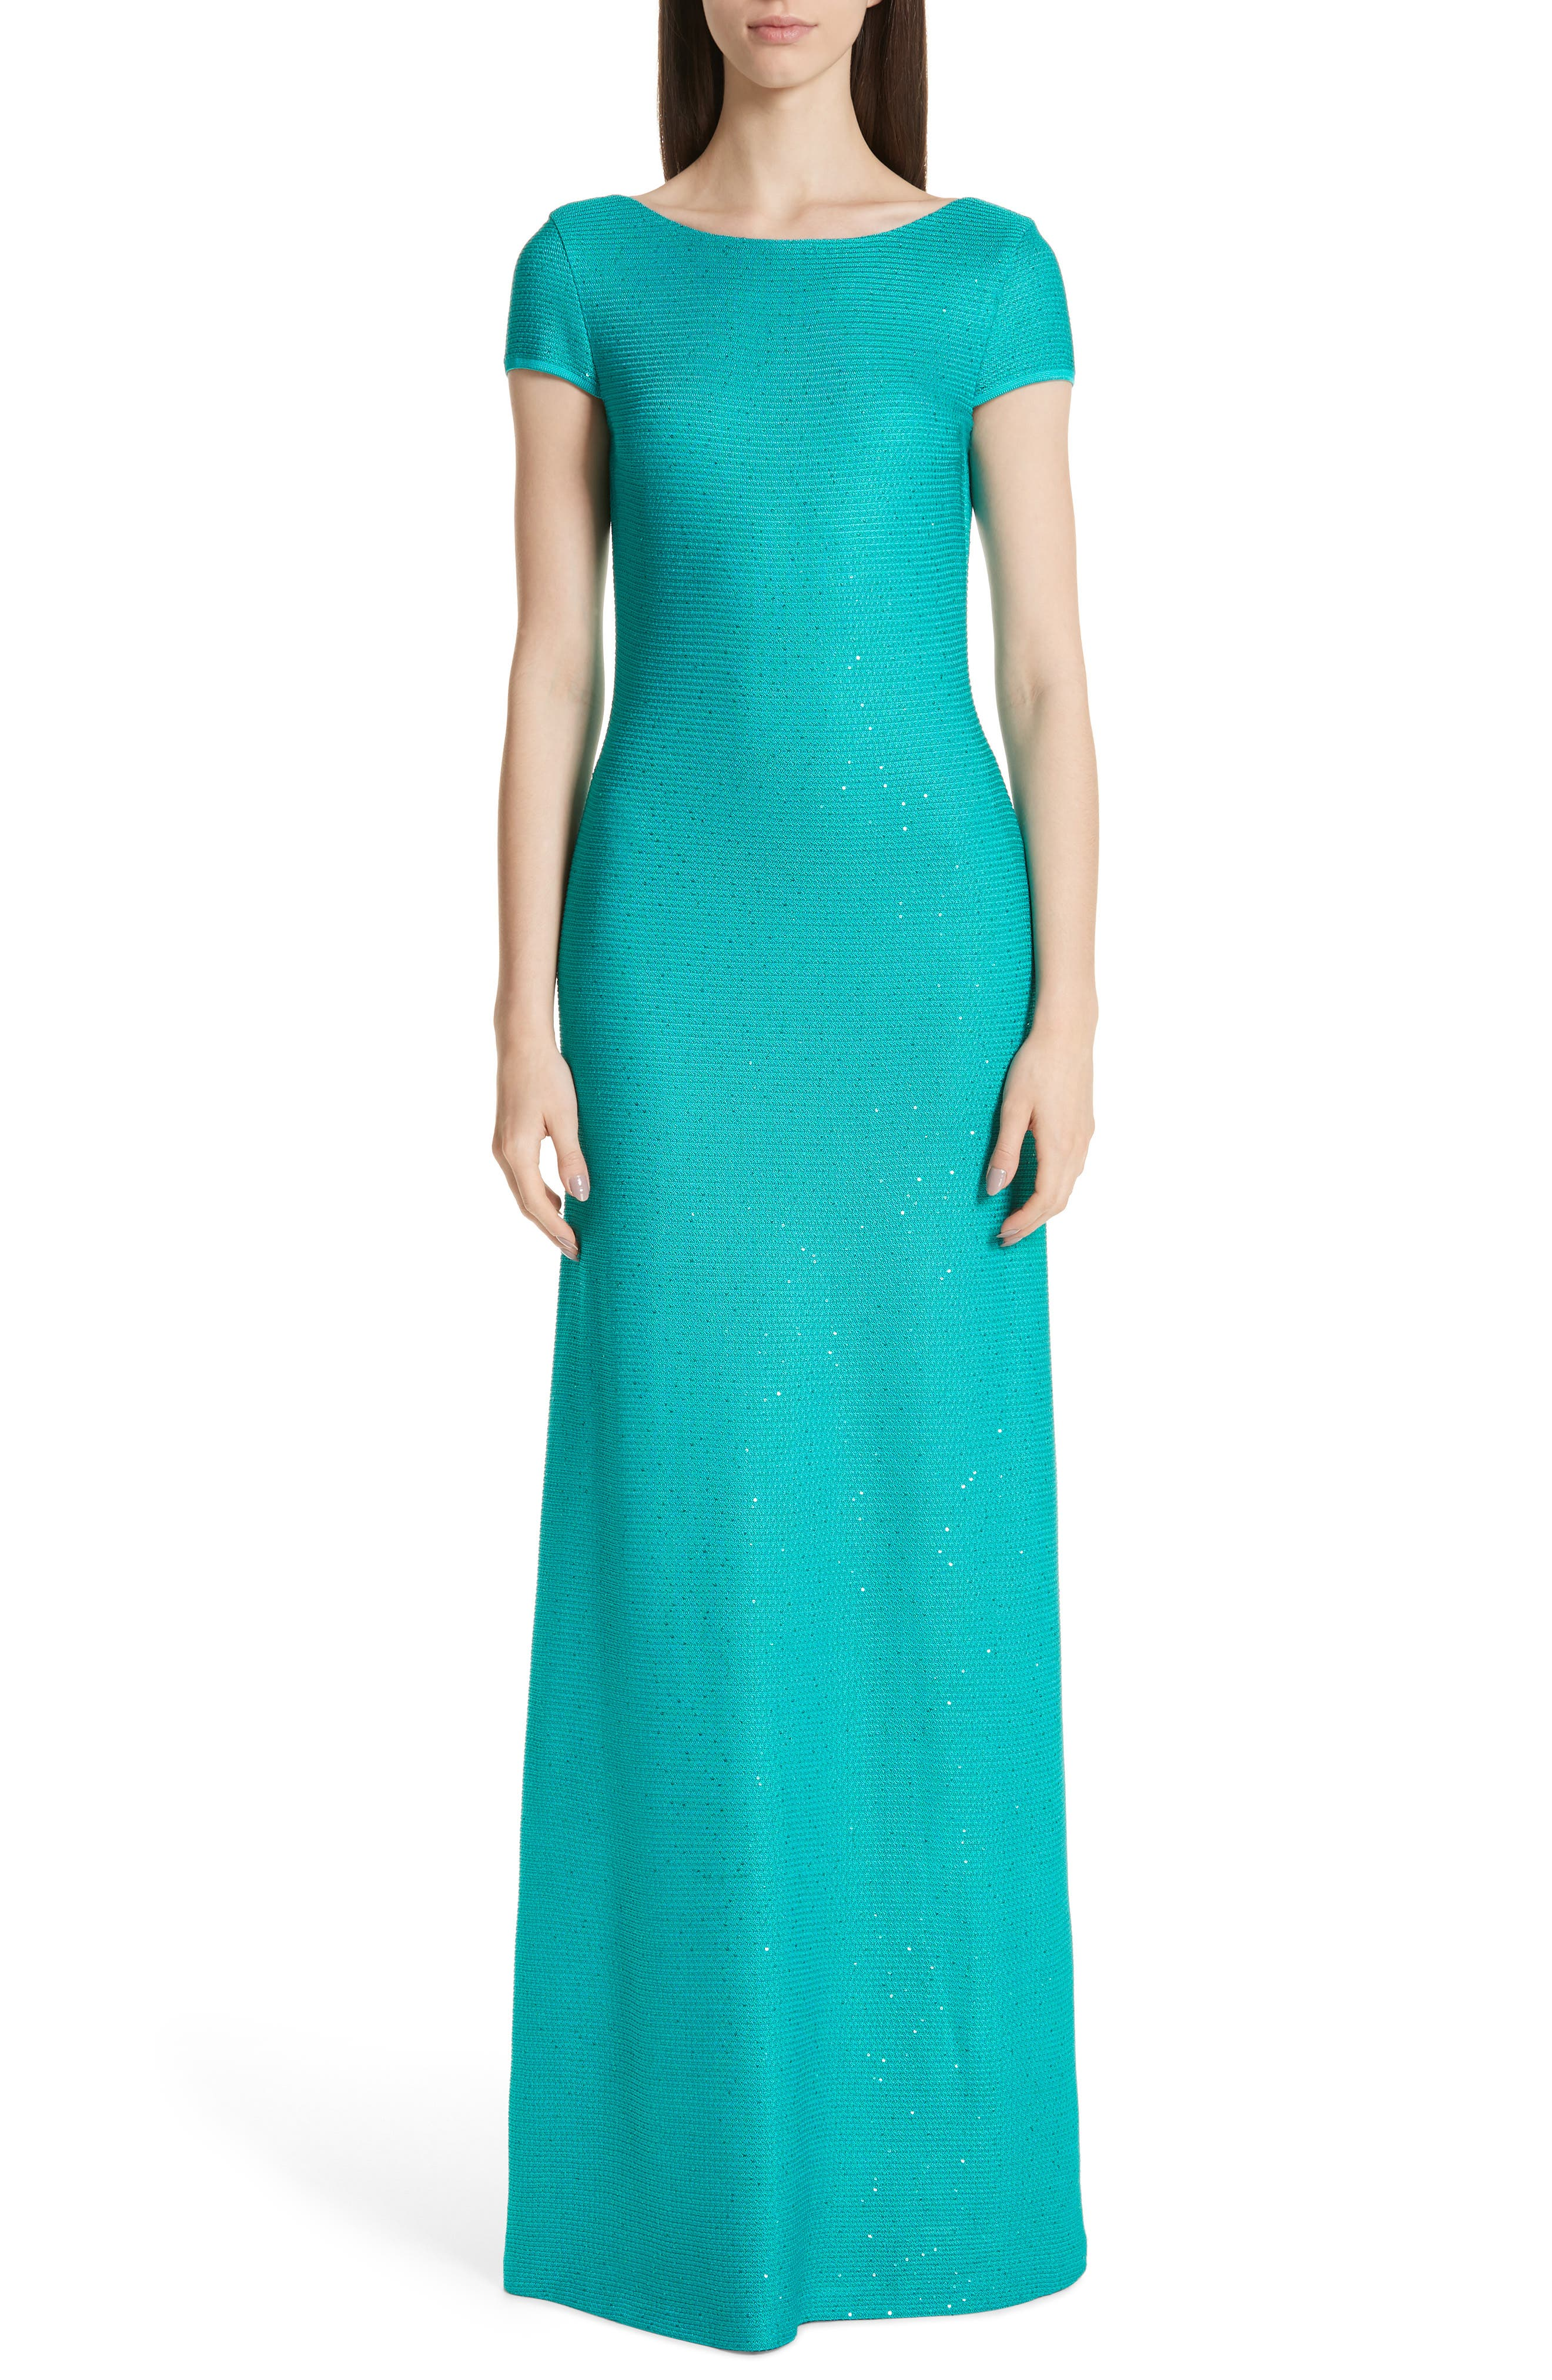 St. John Collection Links Sequin Knit Trumpet Gown, Blue/green